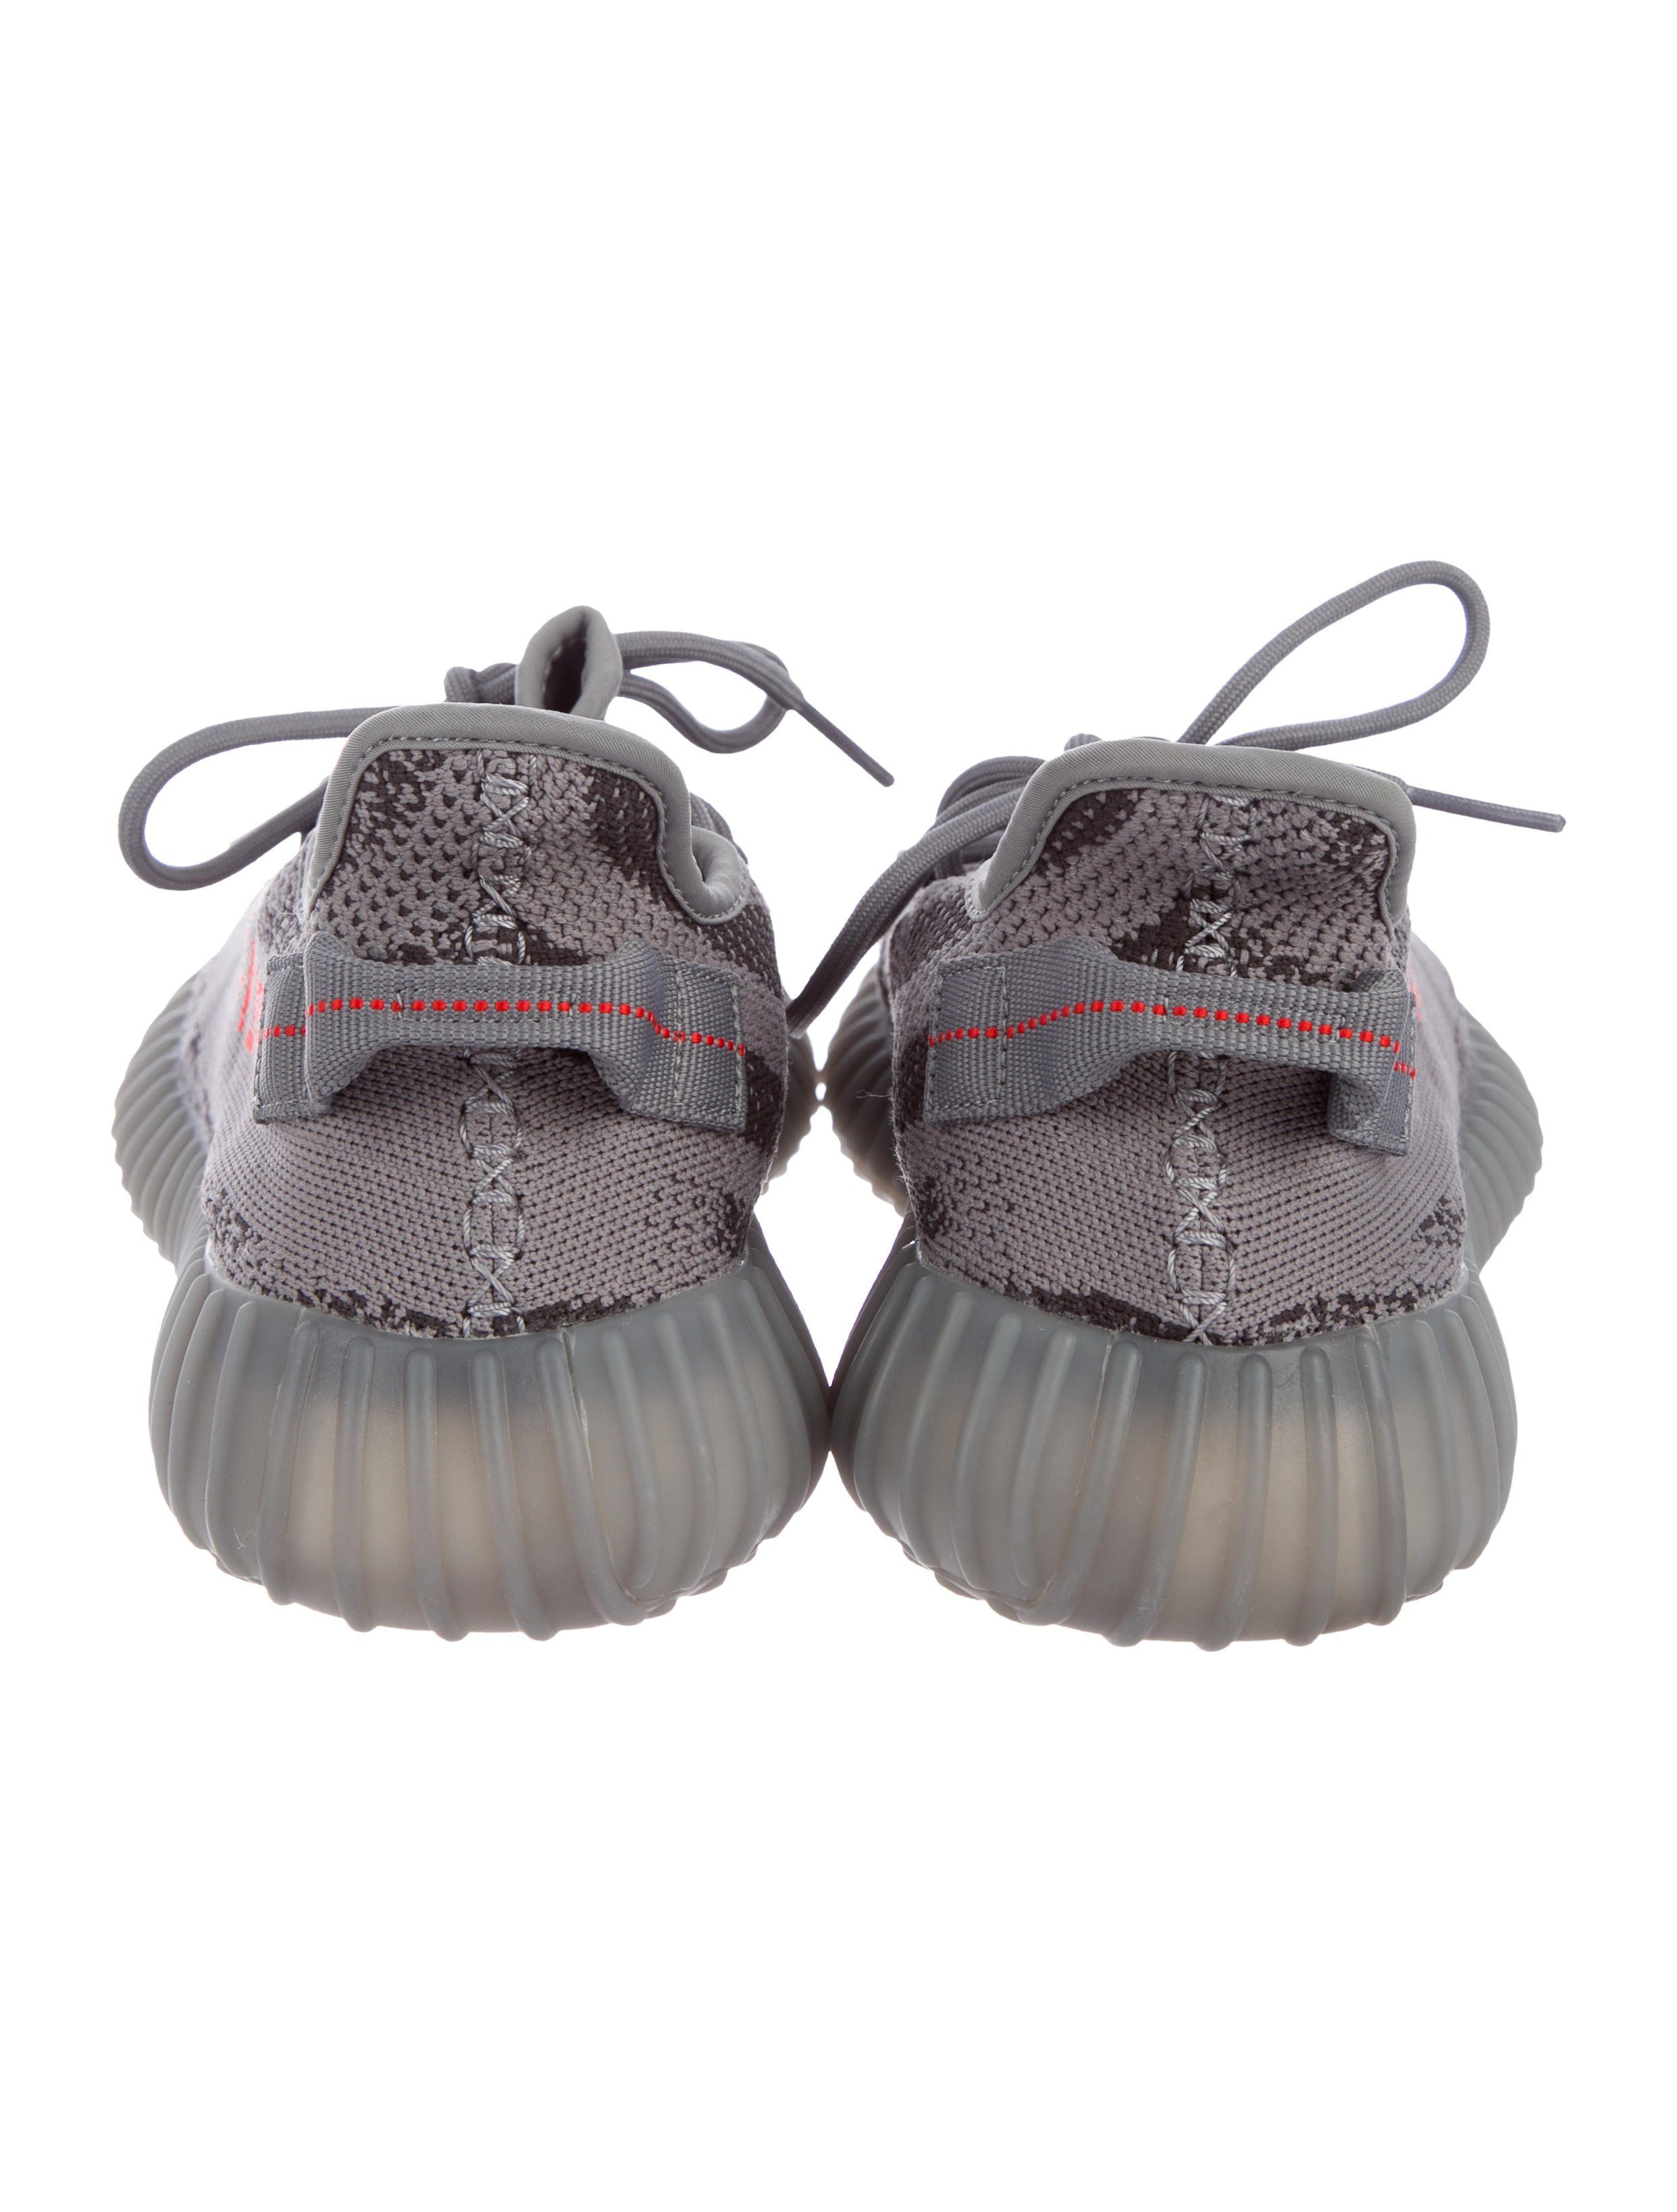 abdf35c98 From the Fall 2017 Release. Men s Beluga Primeknit Yeezy for Adidas 350 V2  Boost round-toe low-top sneakers with intarsia pattern throughout